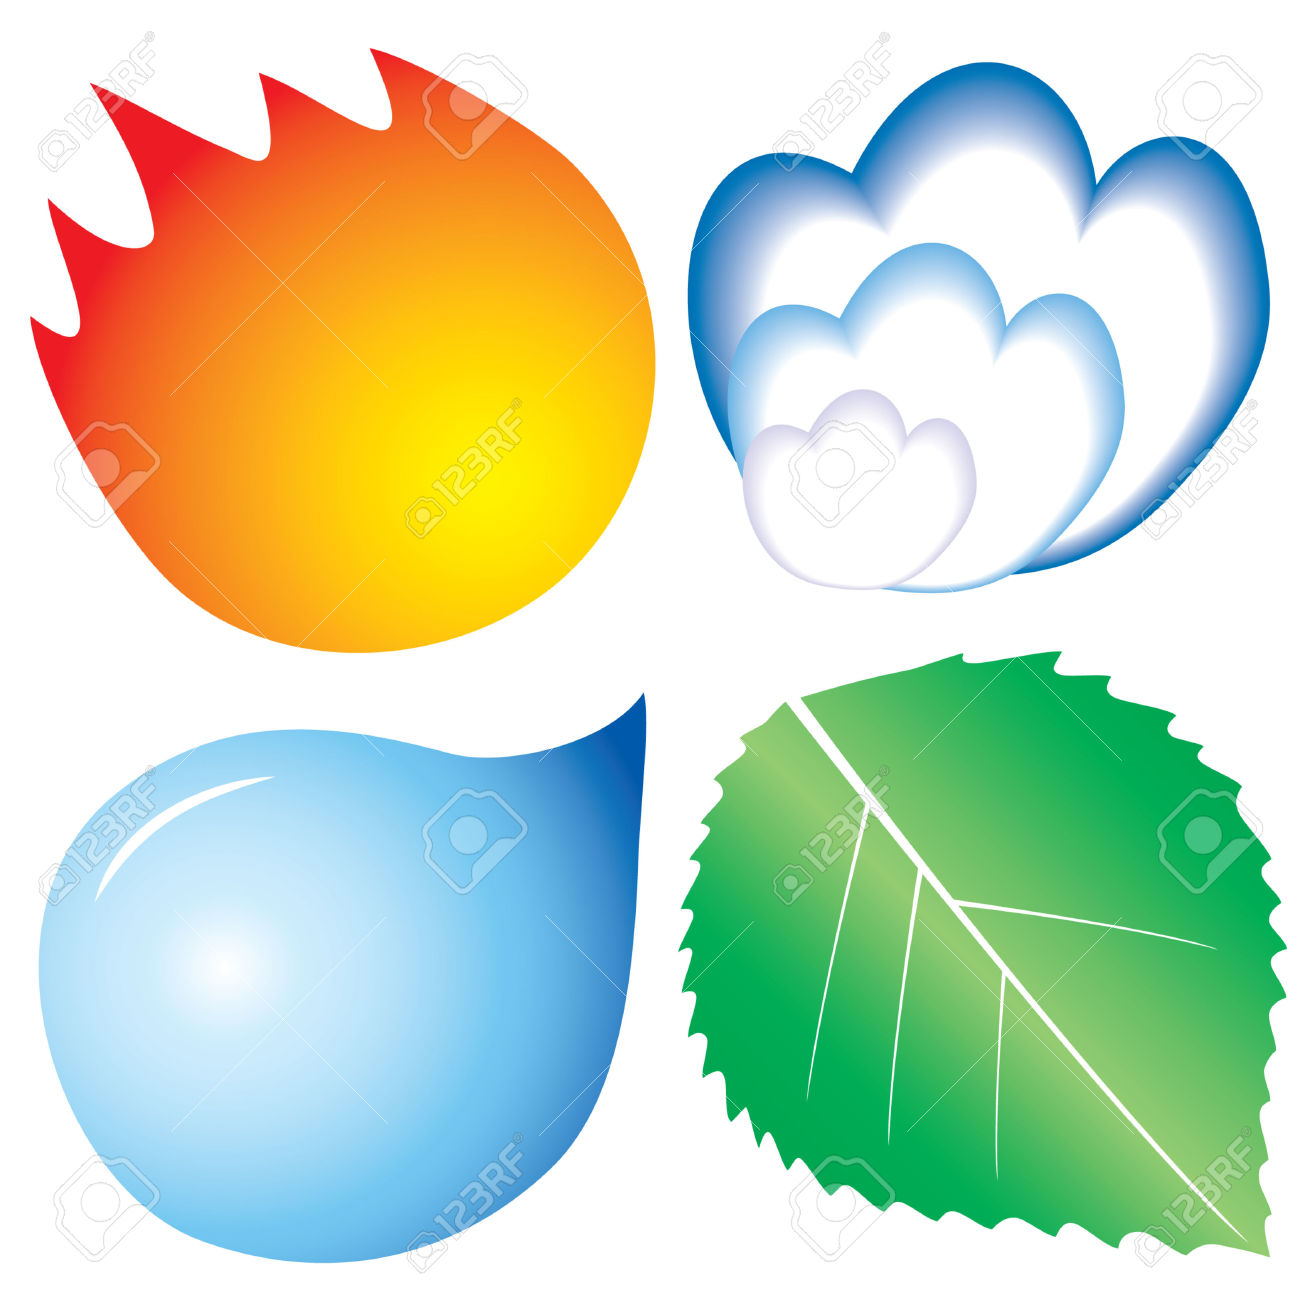 4 Elemente 4 Elements Clipart Clipground